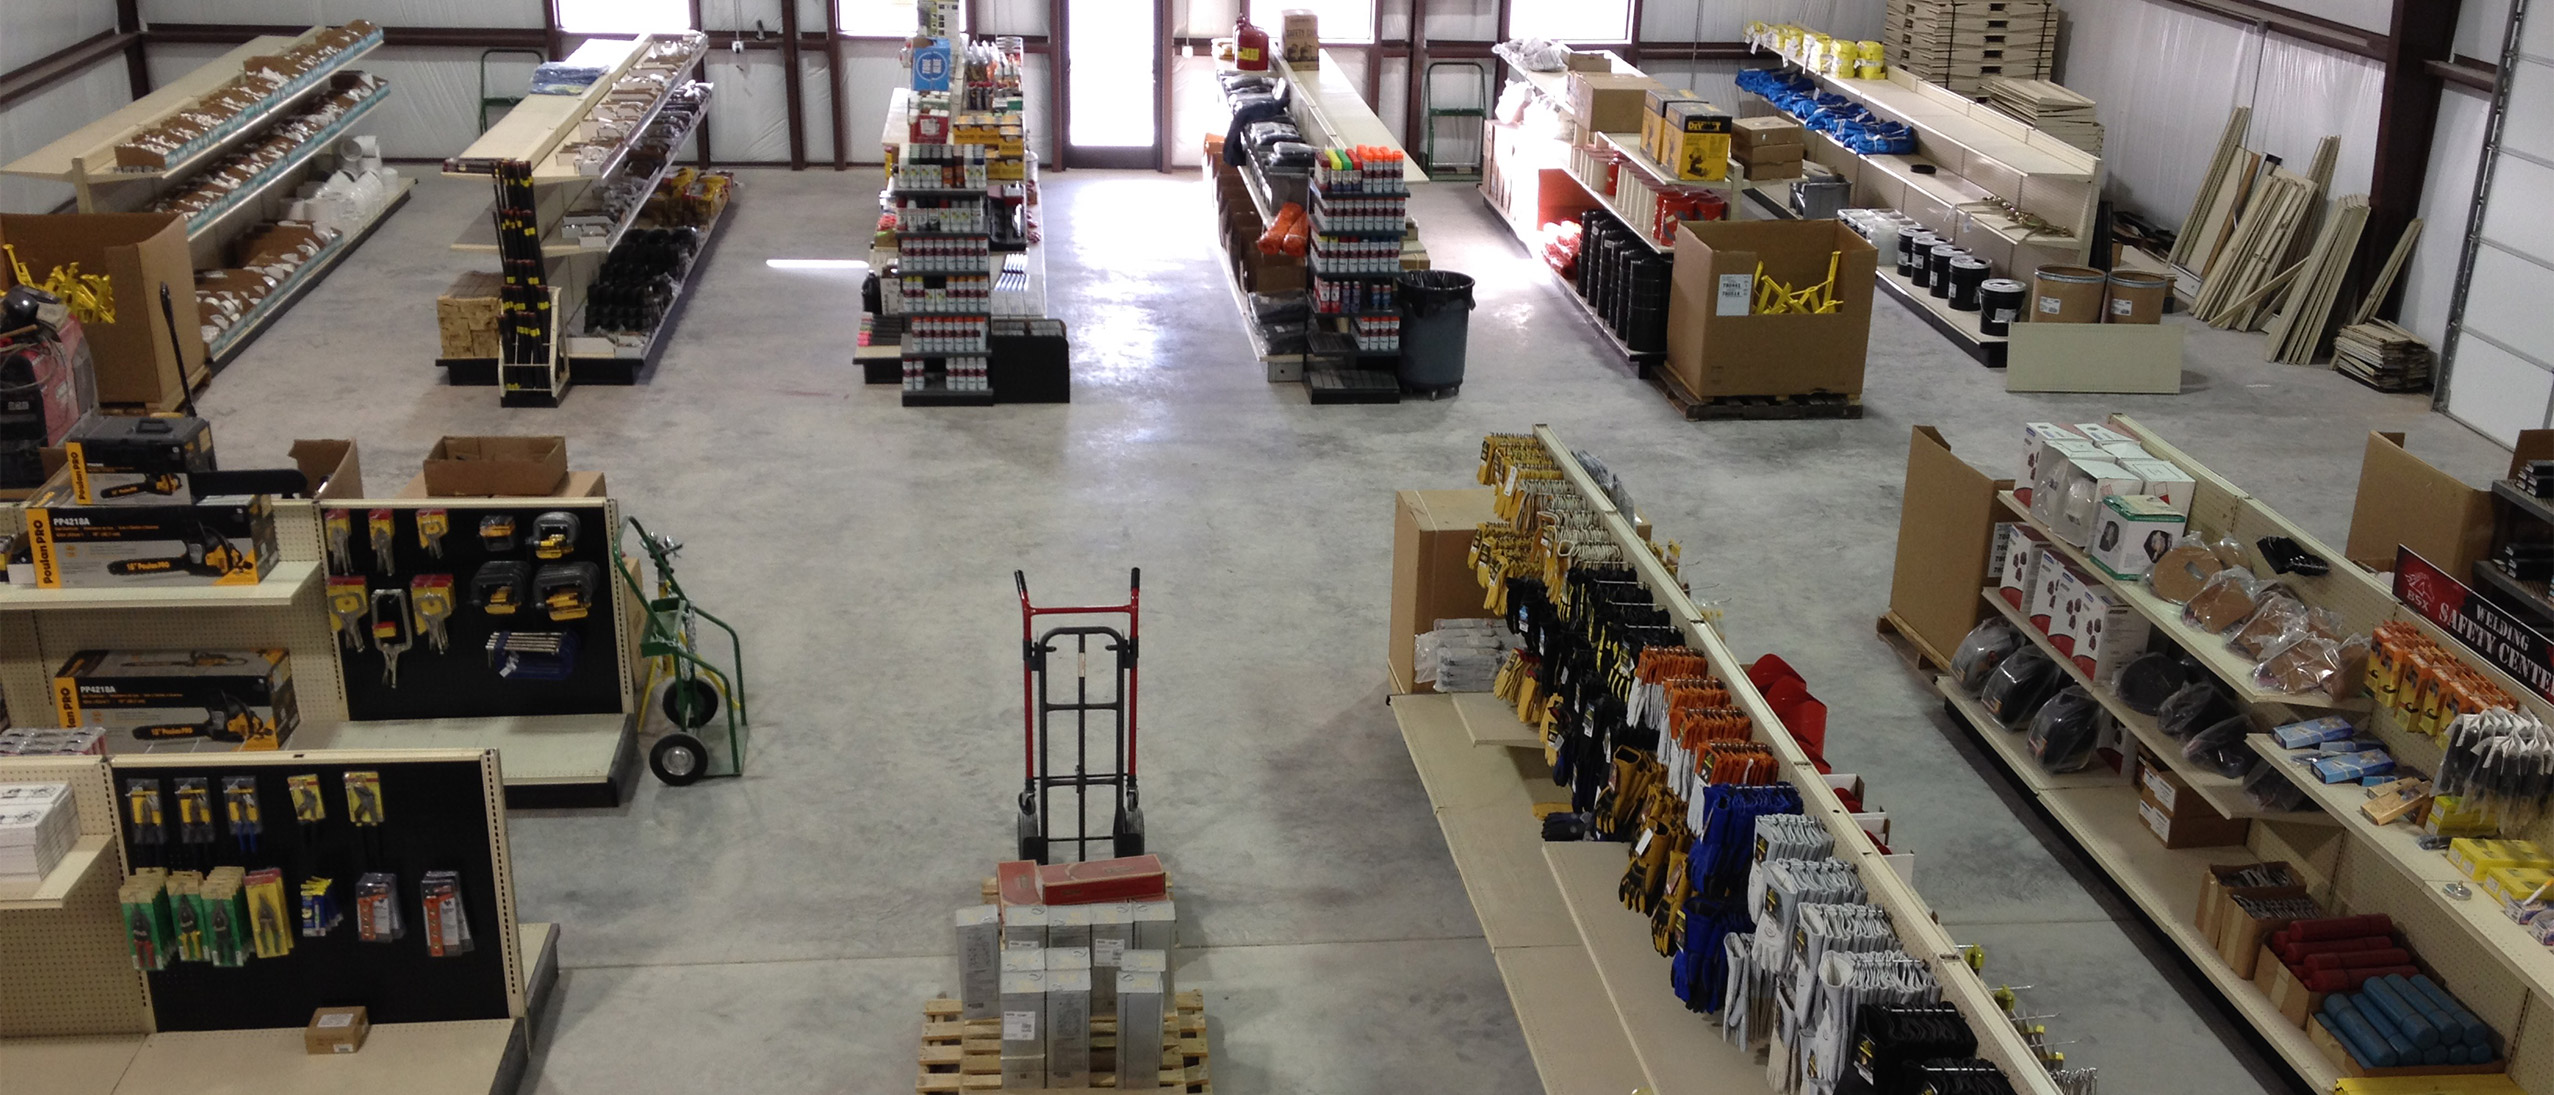 An overhead view of the retail floor at Lowery's wholesale, including metals.